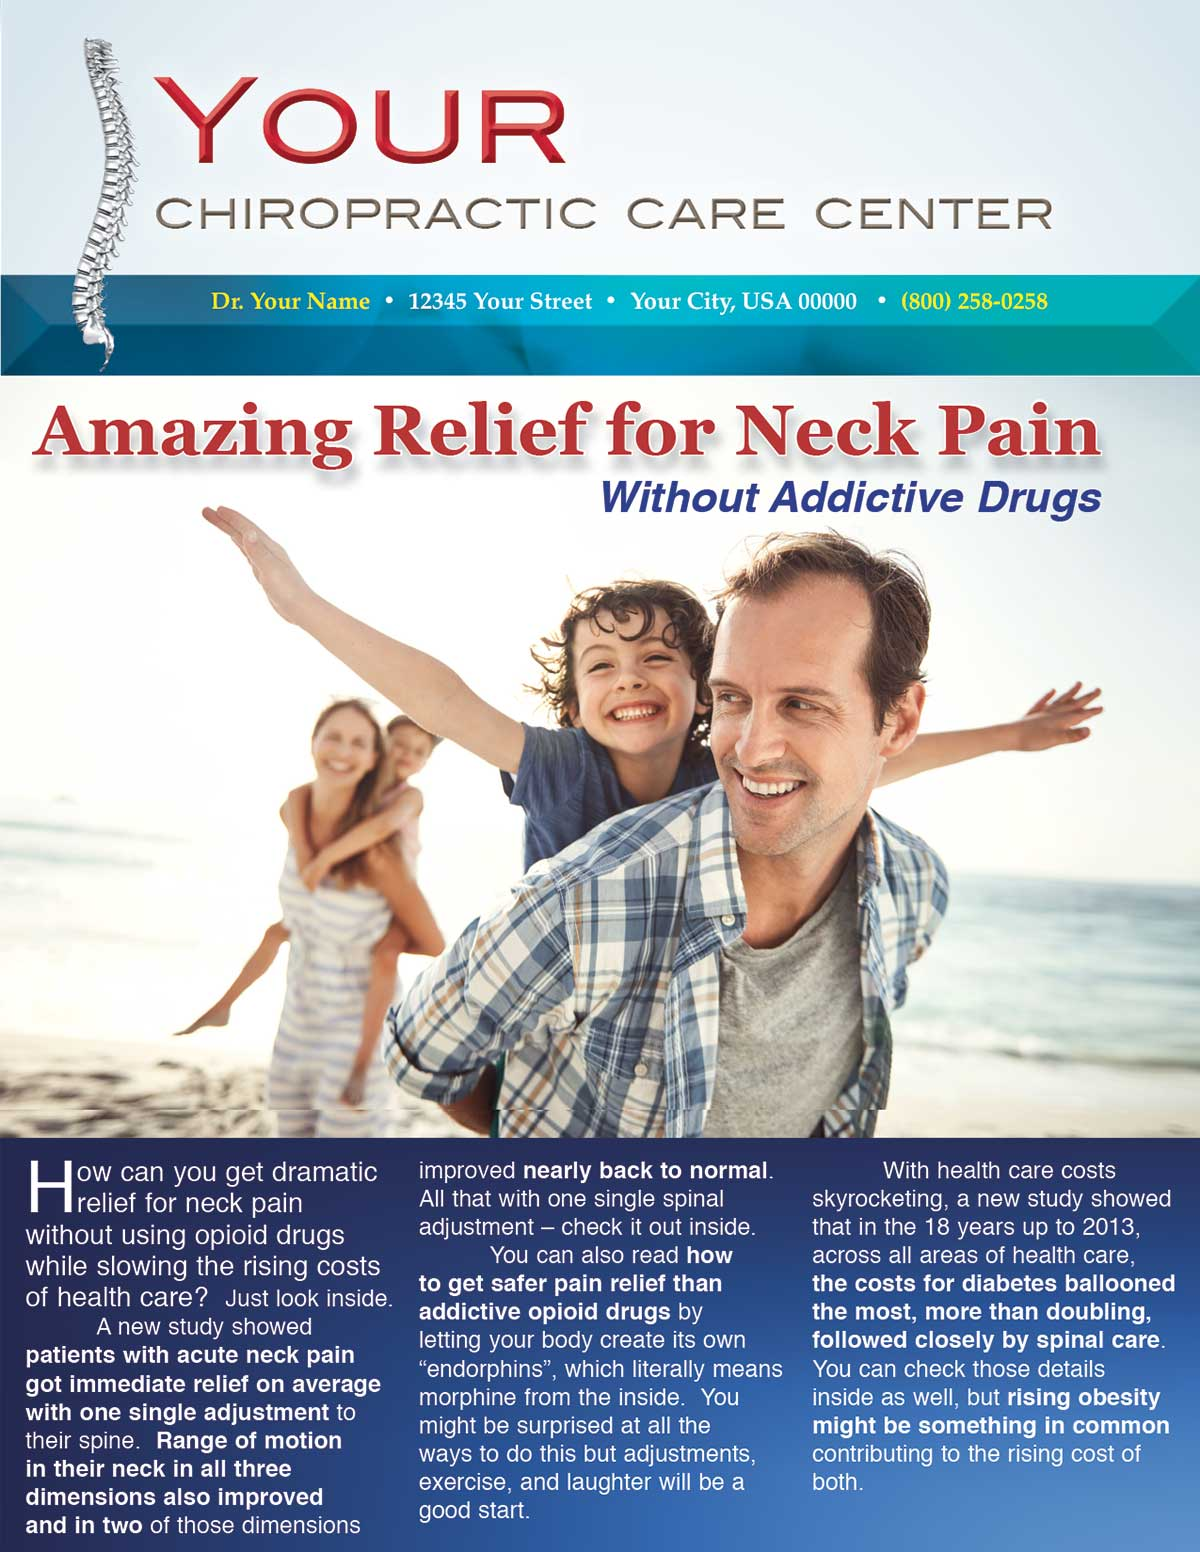 Amazing Relief for Neck Pain